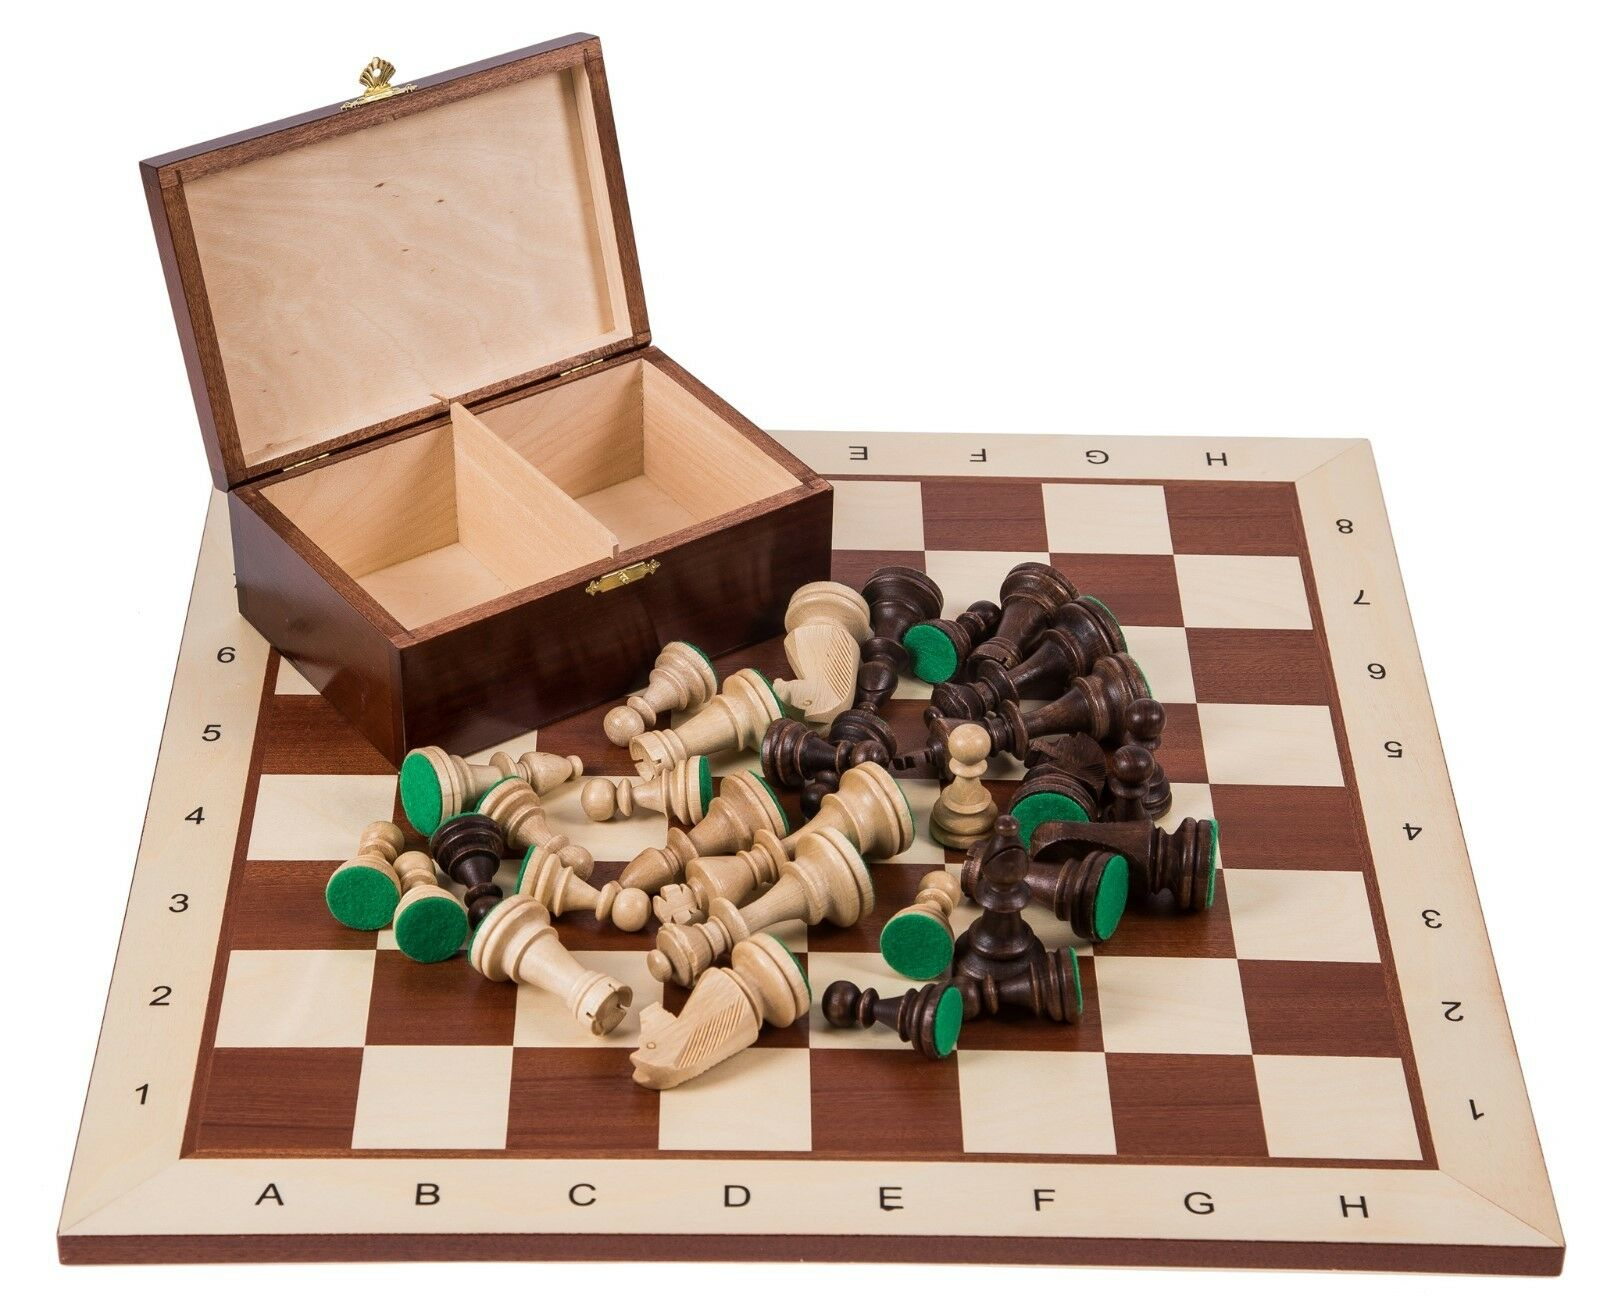 SQUARE - Pro Wooden Chess Set No. 6 - Mahogany BL - Chessboard & Chess Pieces